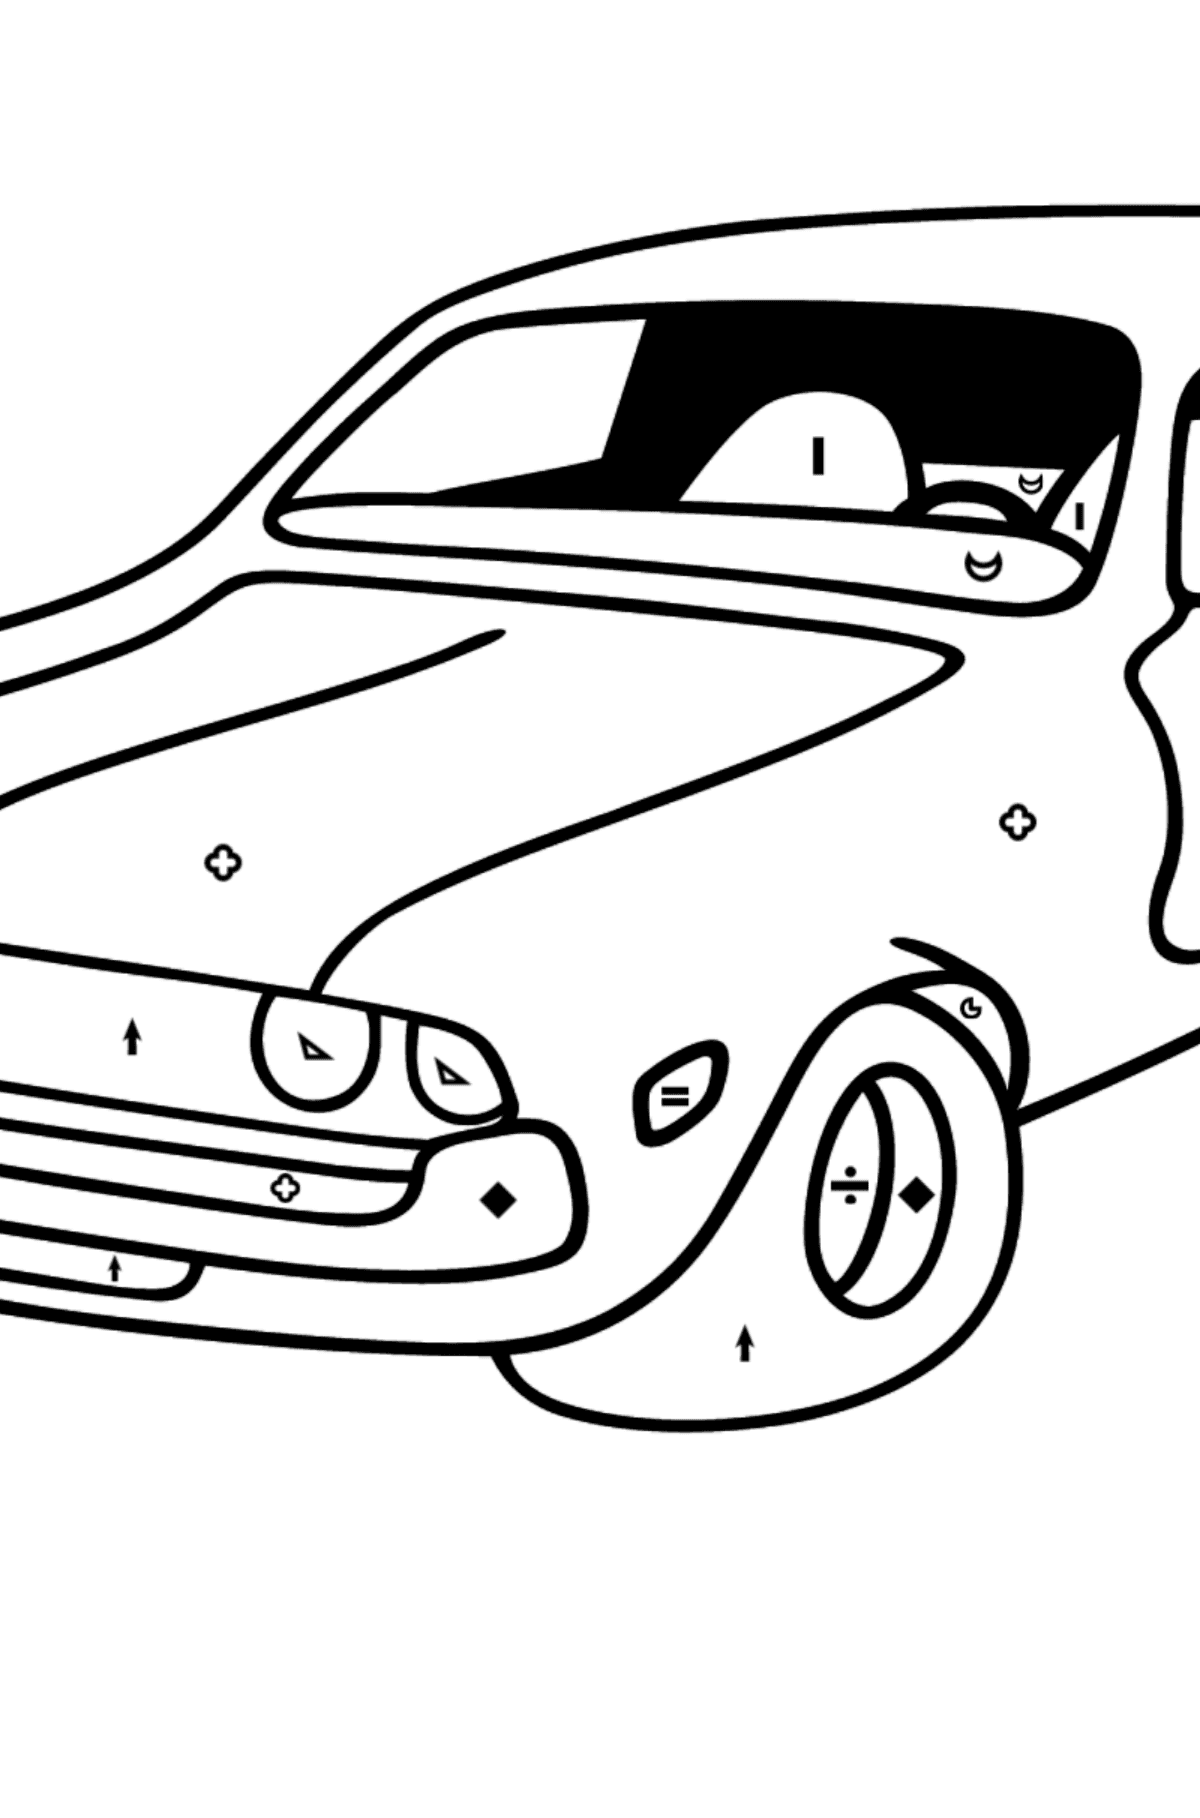 Chevrolet gray car coloring page - Coloring by Symbols and Geometric Shapes for Kids